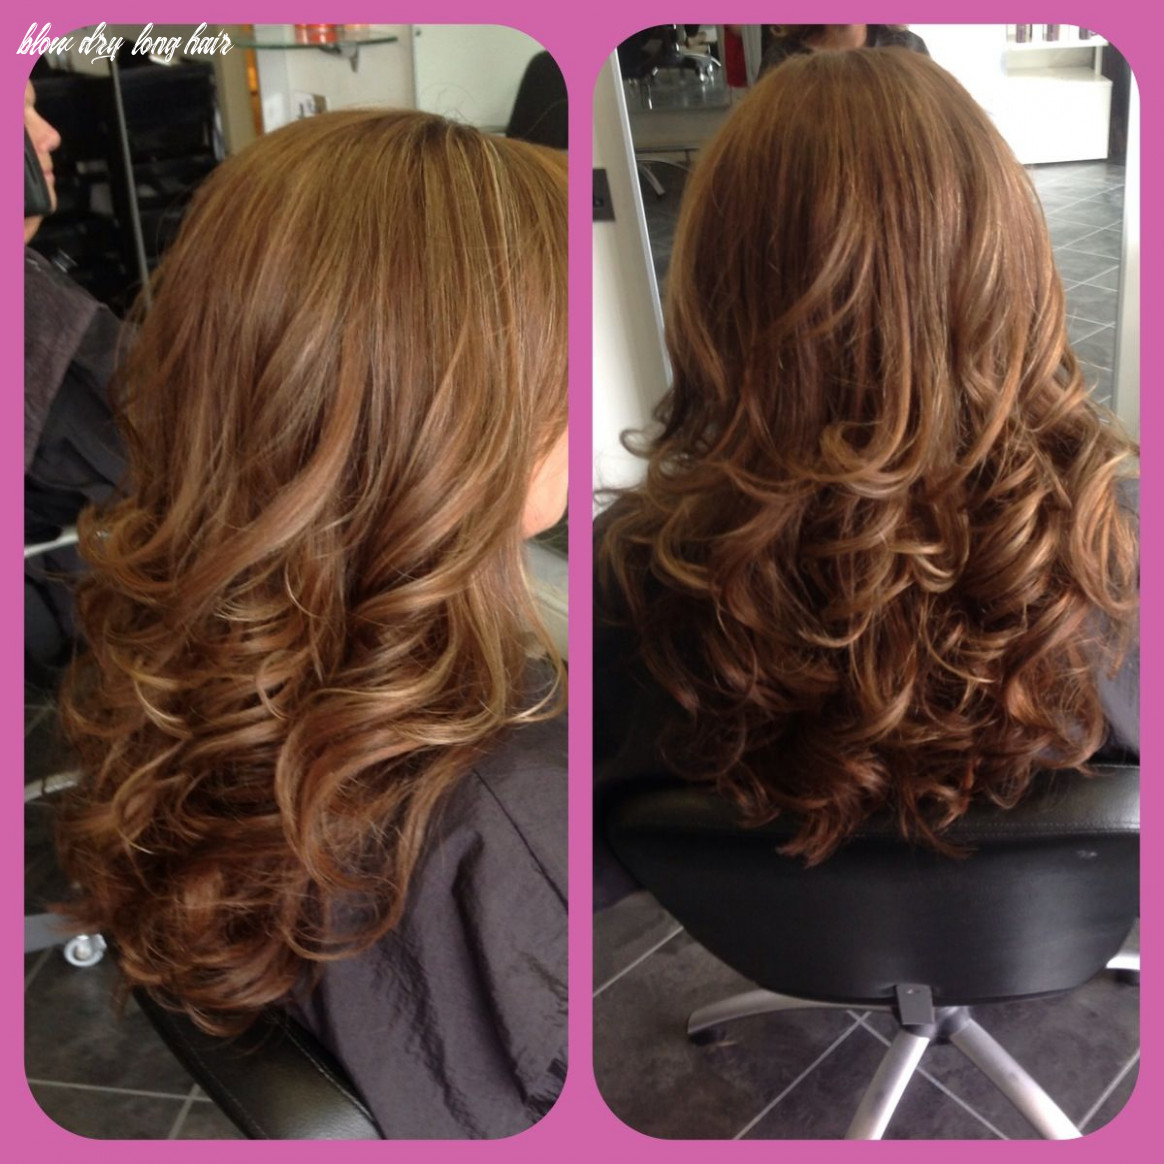 Bouncy blow dry (with images)   curly blowdry long hair, blow dry